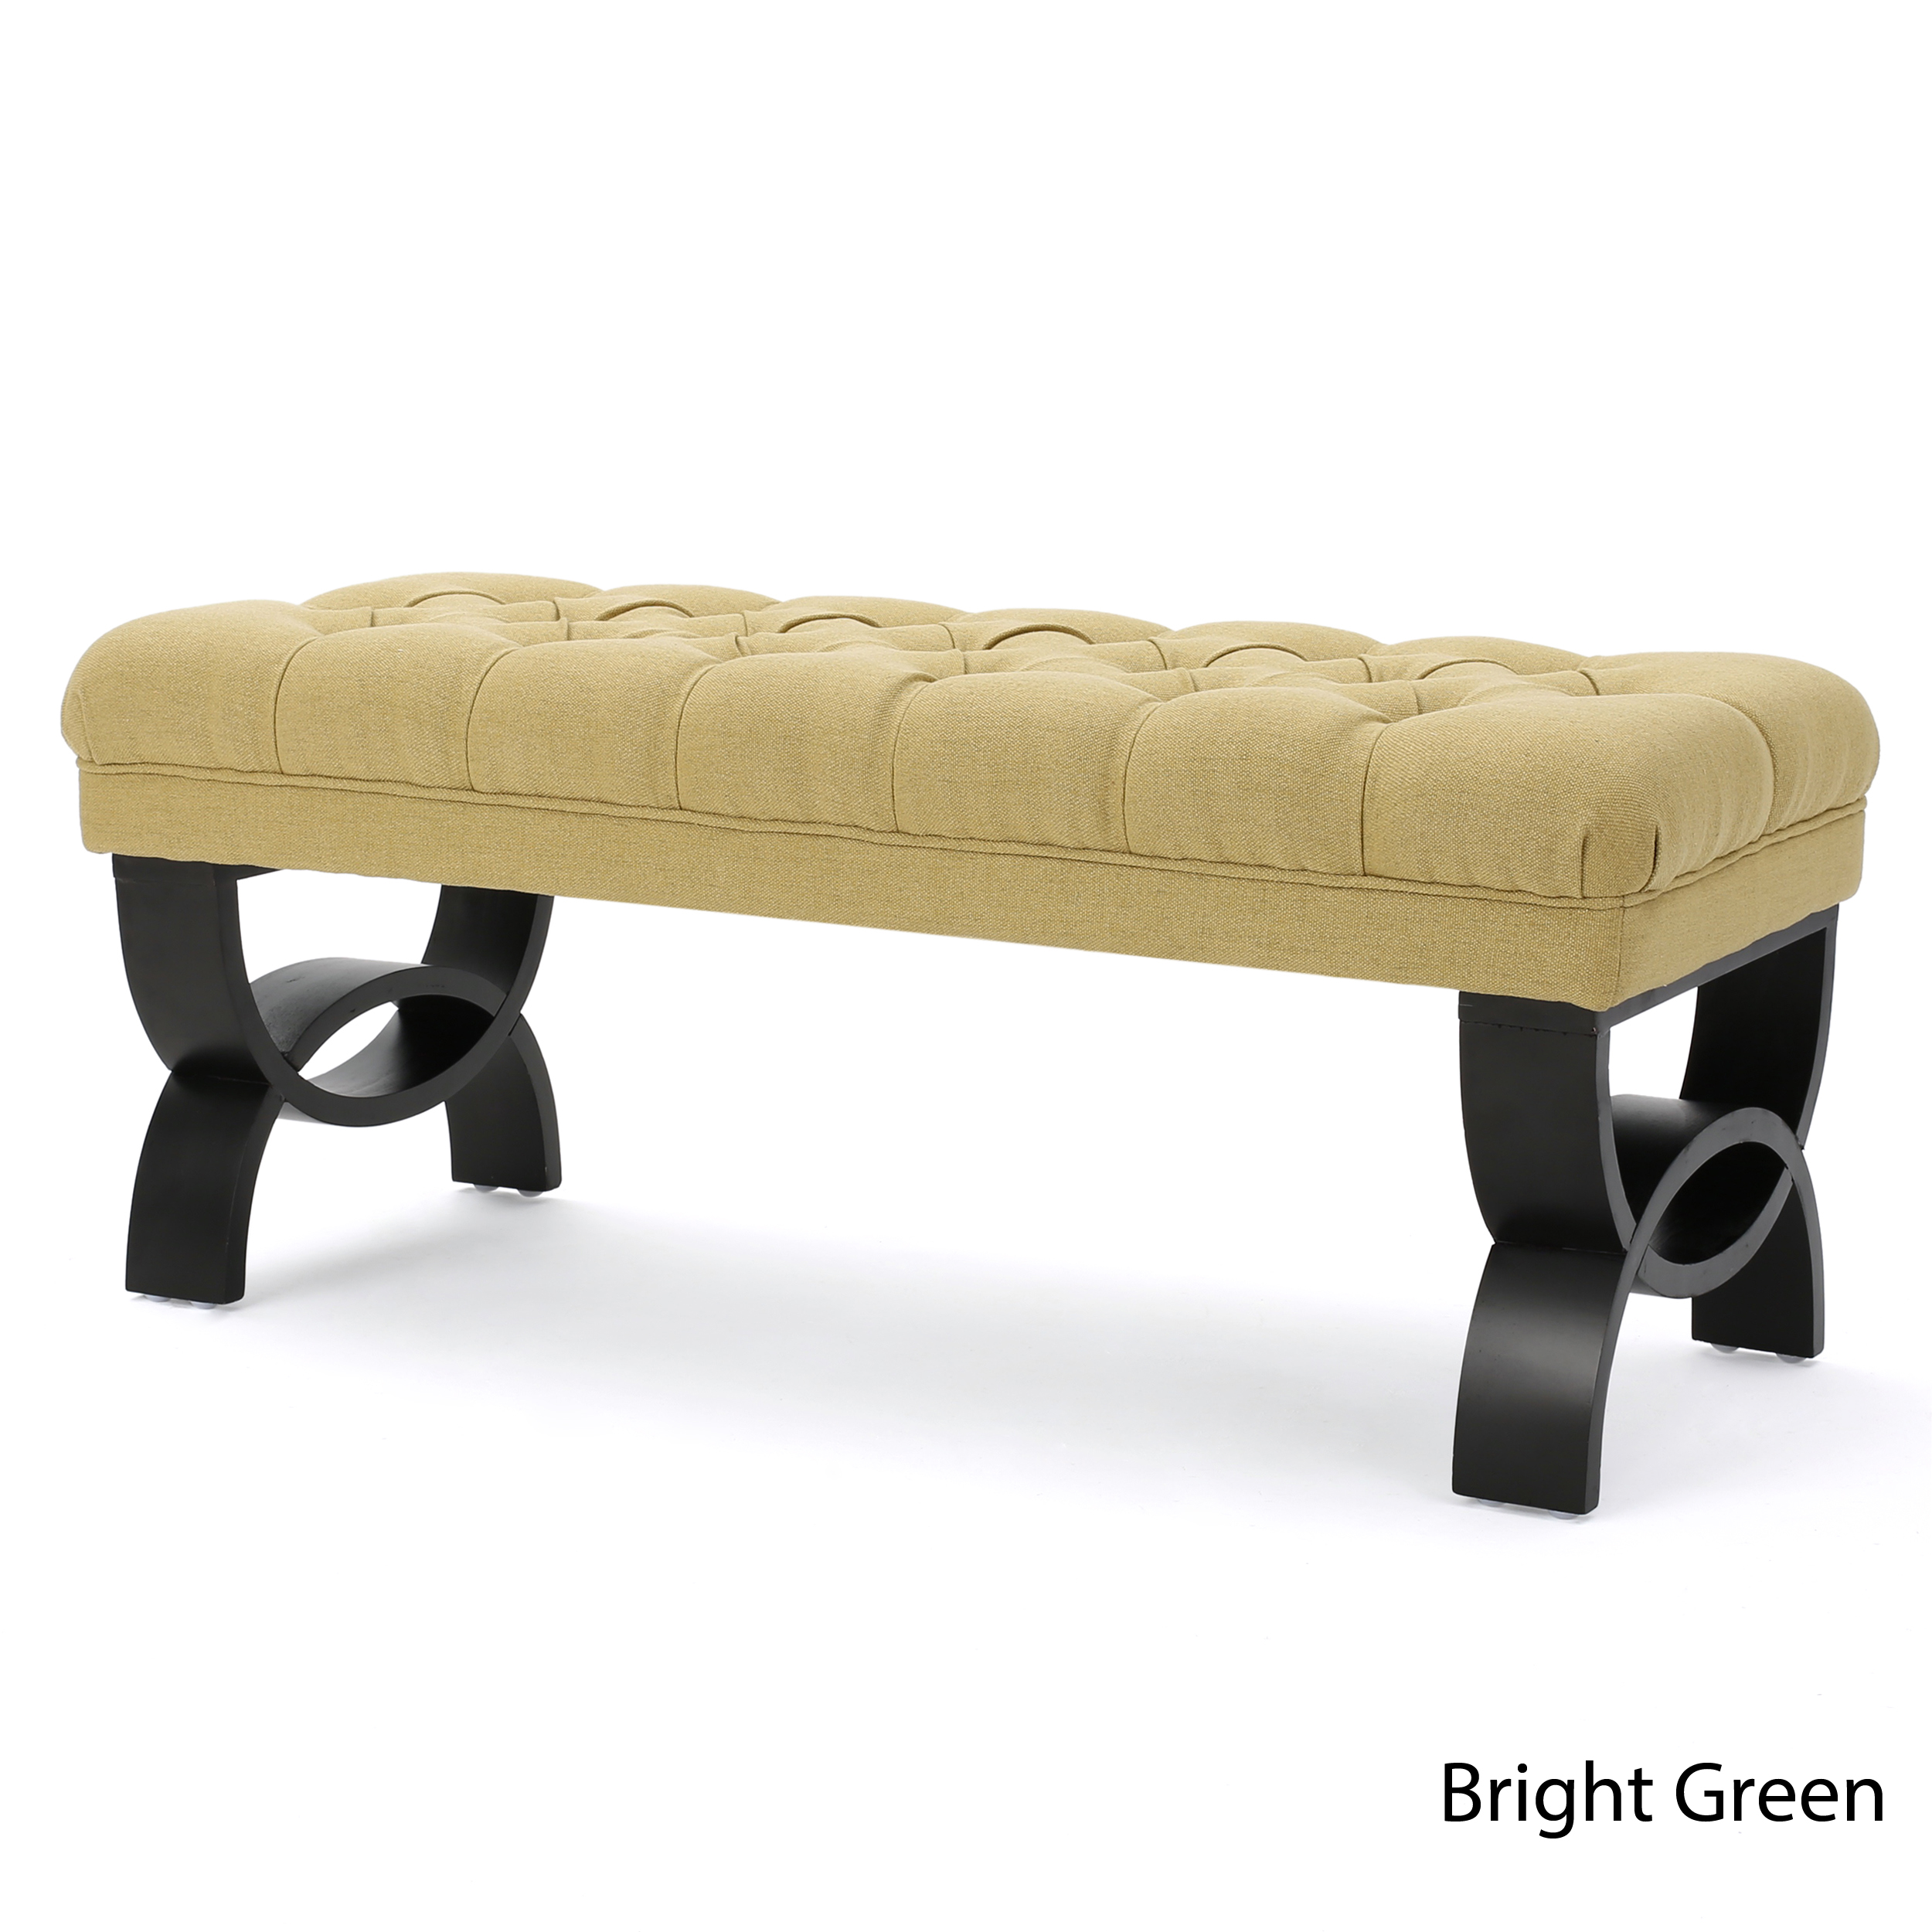 Marvelous Details About Reddington Tufted Fabric Ottoman Bench Bralicious Painted Fabric Chair Ideas Braliciousco